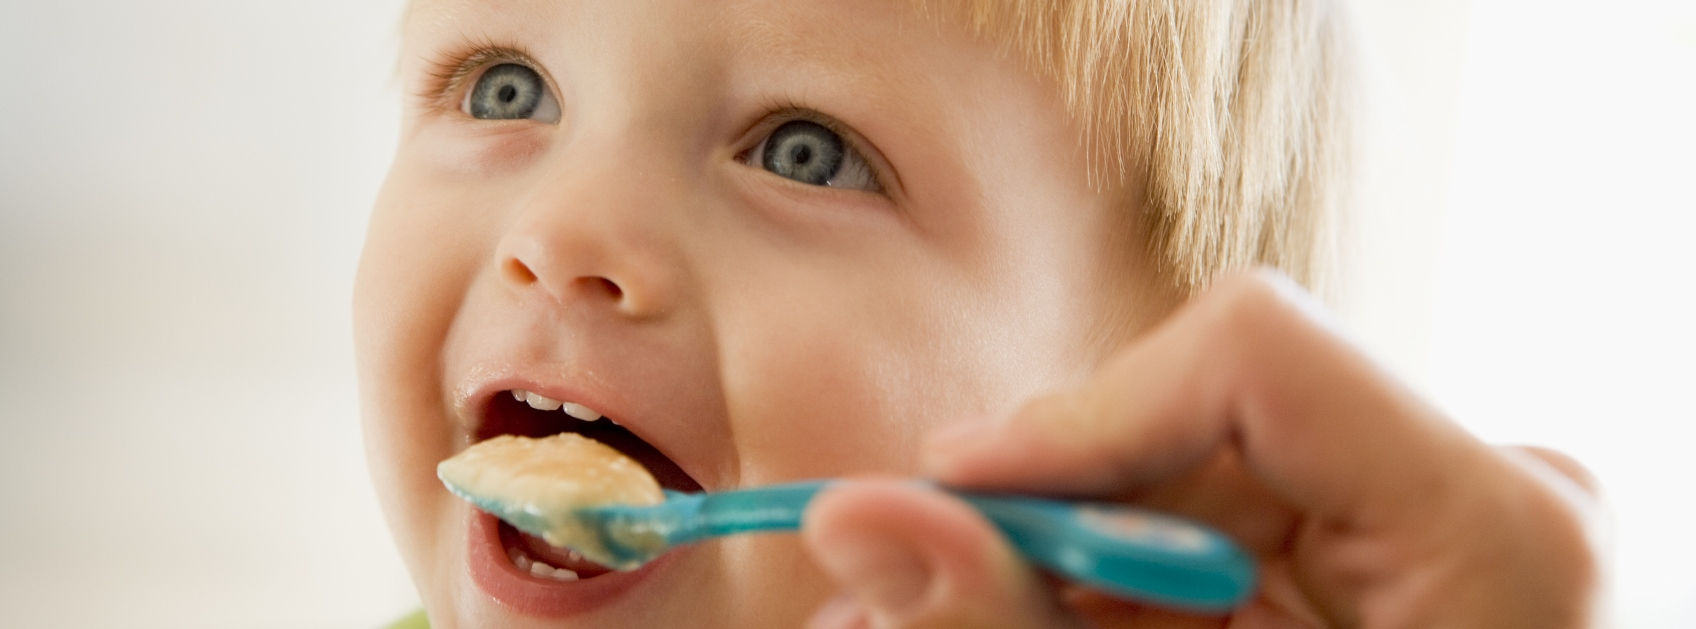 Give It a Try! Introducing New Foods to Your Baby}